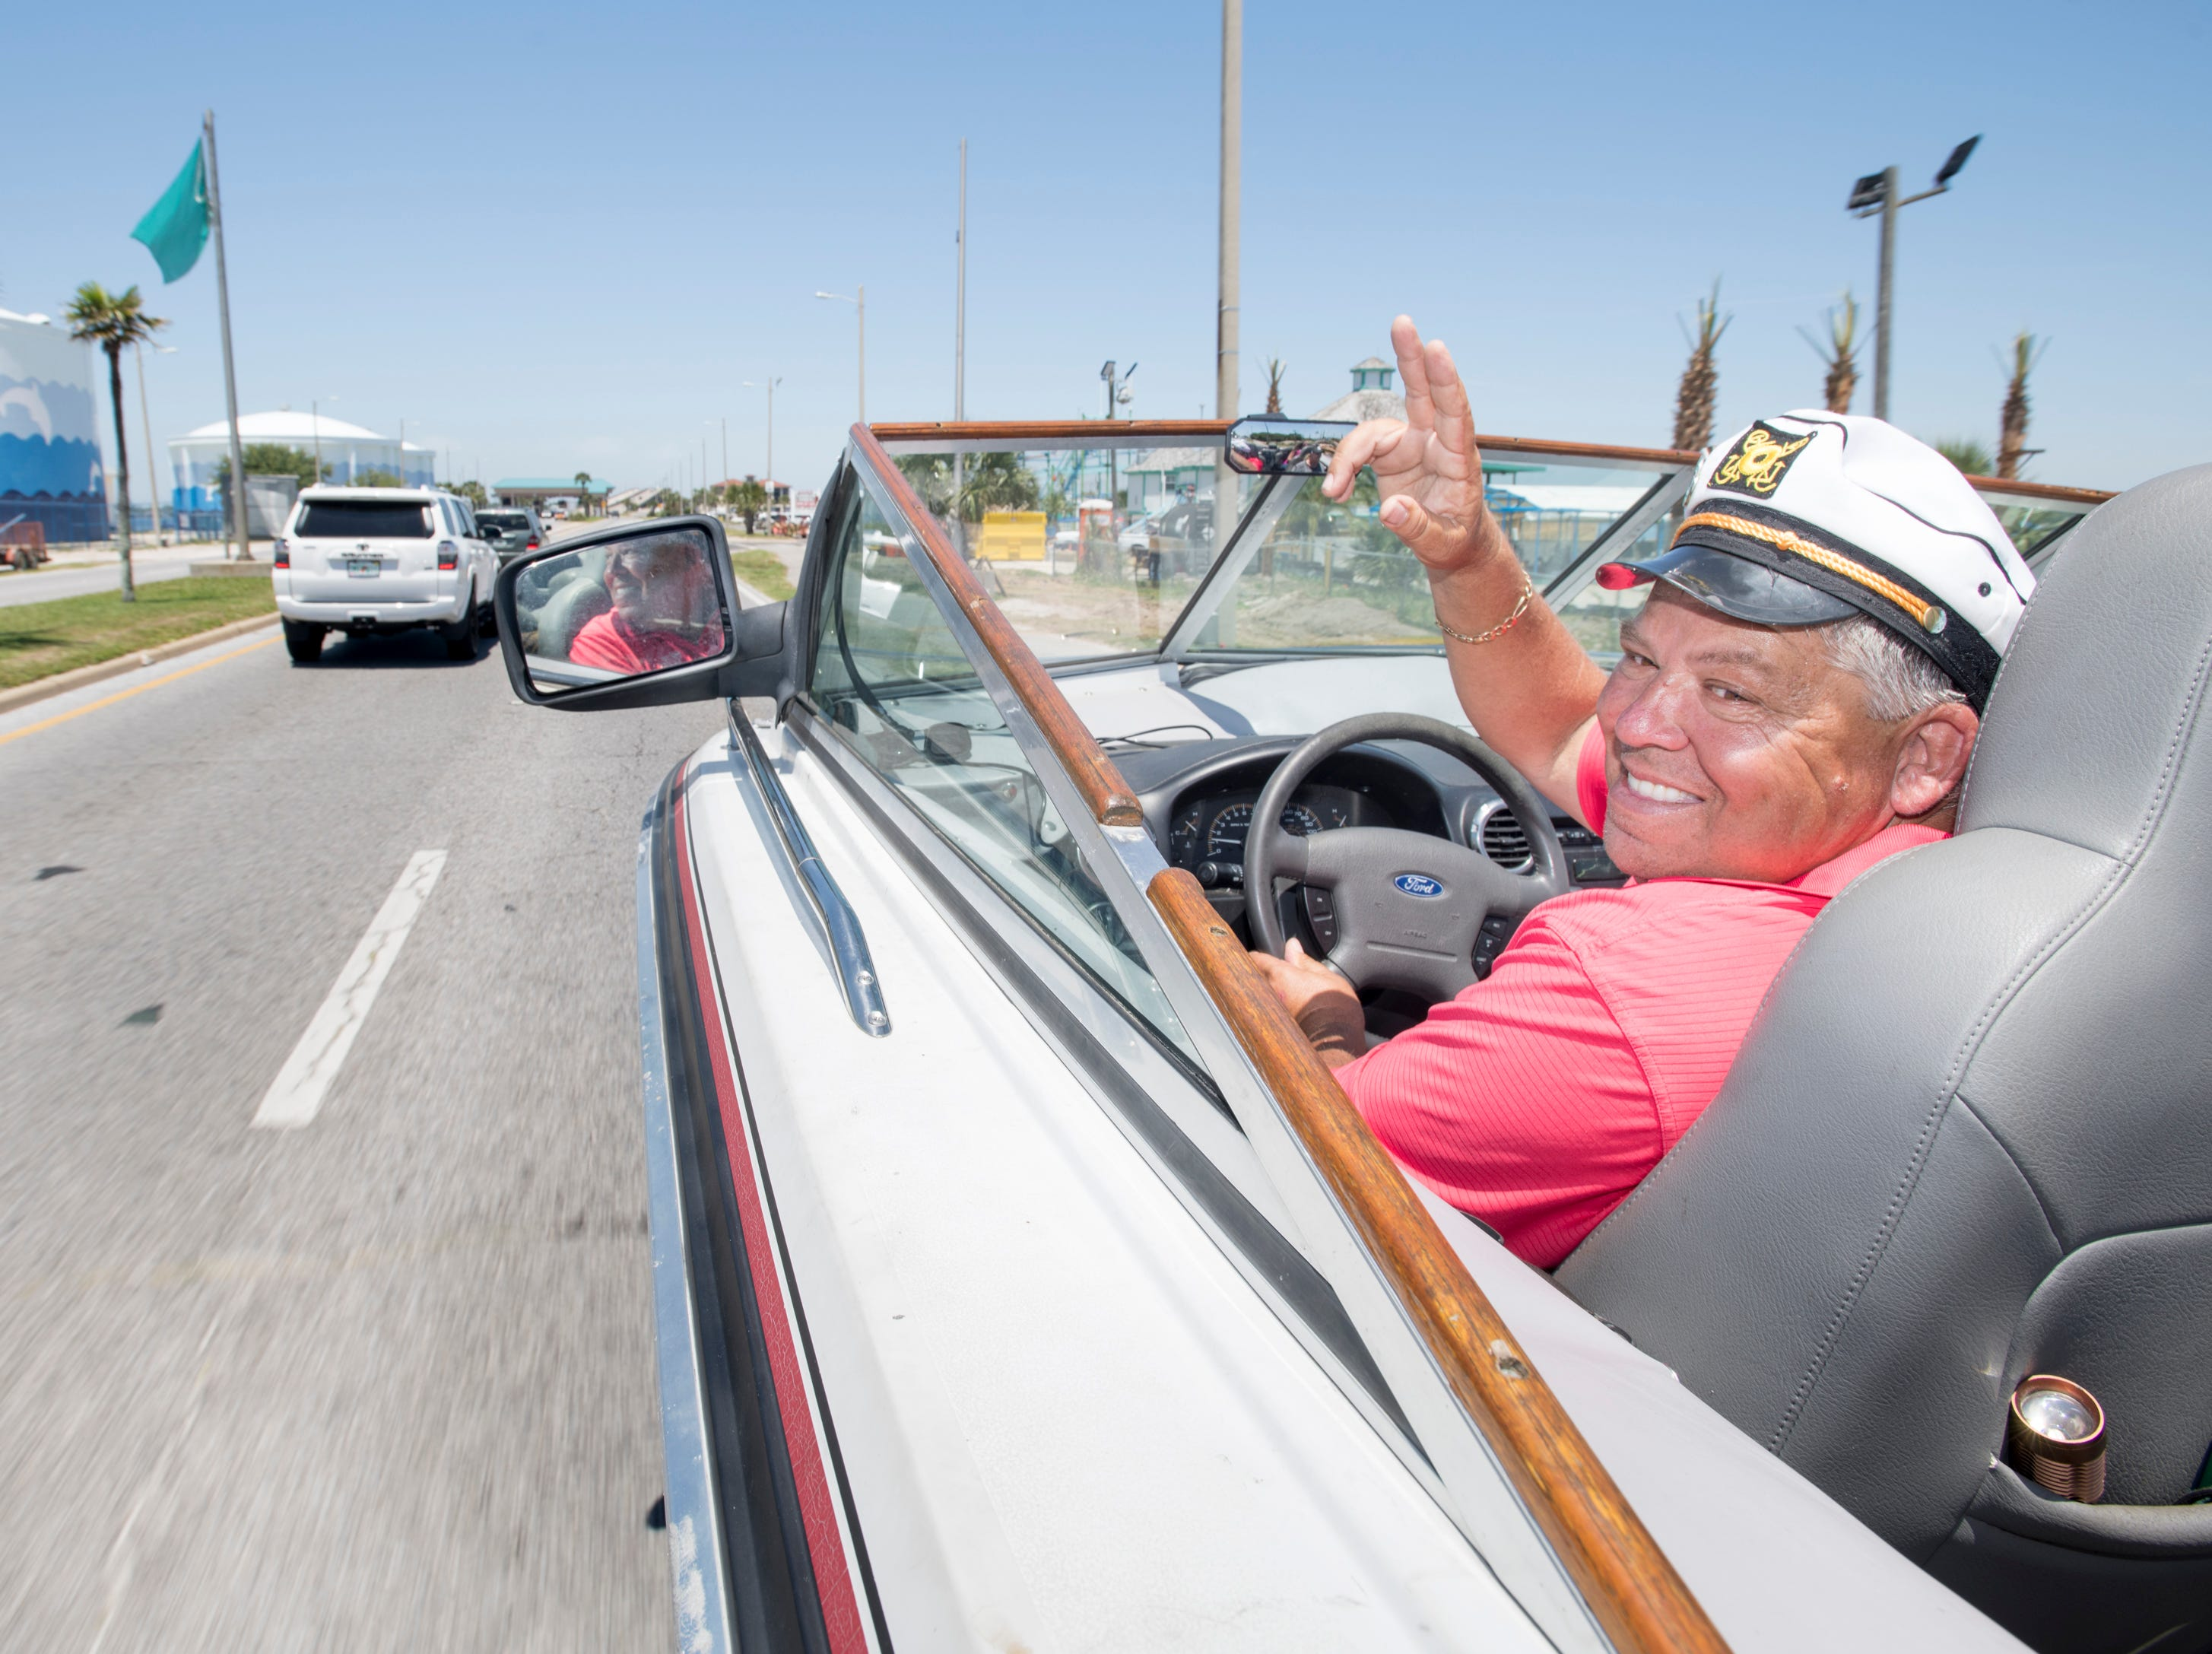 Gerry Moore waves to passing cars as he cruises along Pensacola Beach Blvd. in his Boat Car in Pensacola on Tuesday, May 7, 2019.  The vehicle is a  1986 Chris Craft 210 Scorpion boat - 2003 Ford Expedition SUV hybrid created by Gerry.